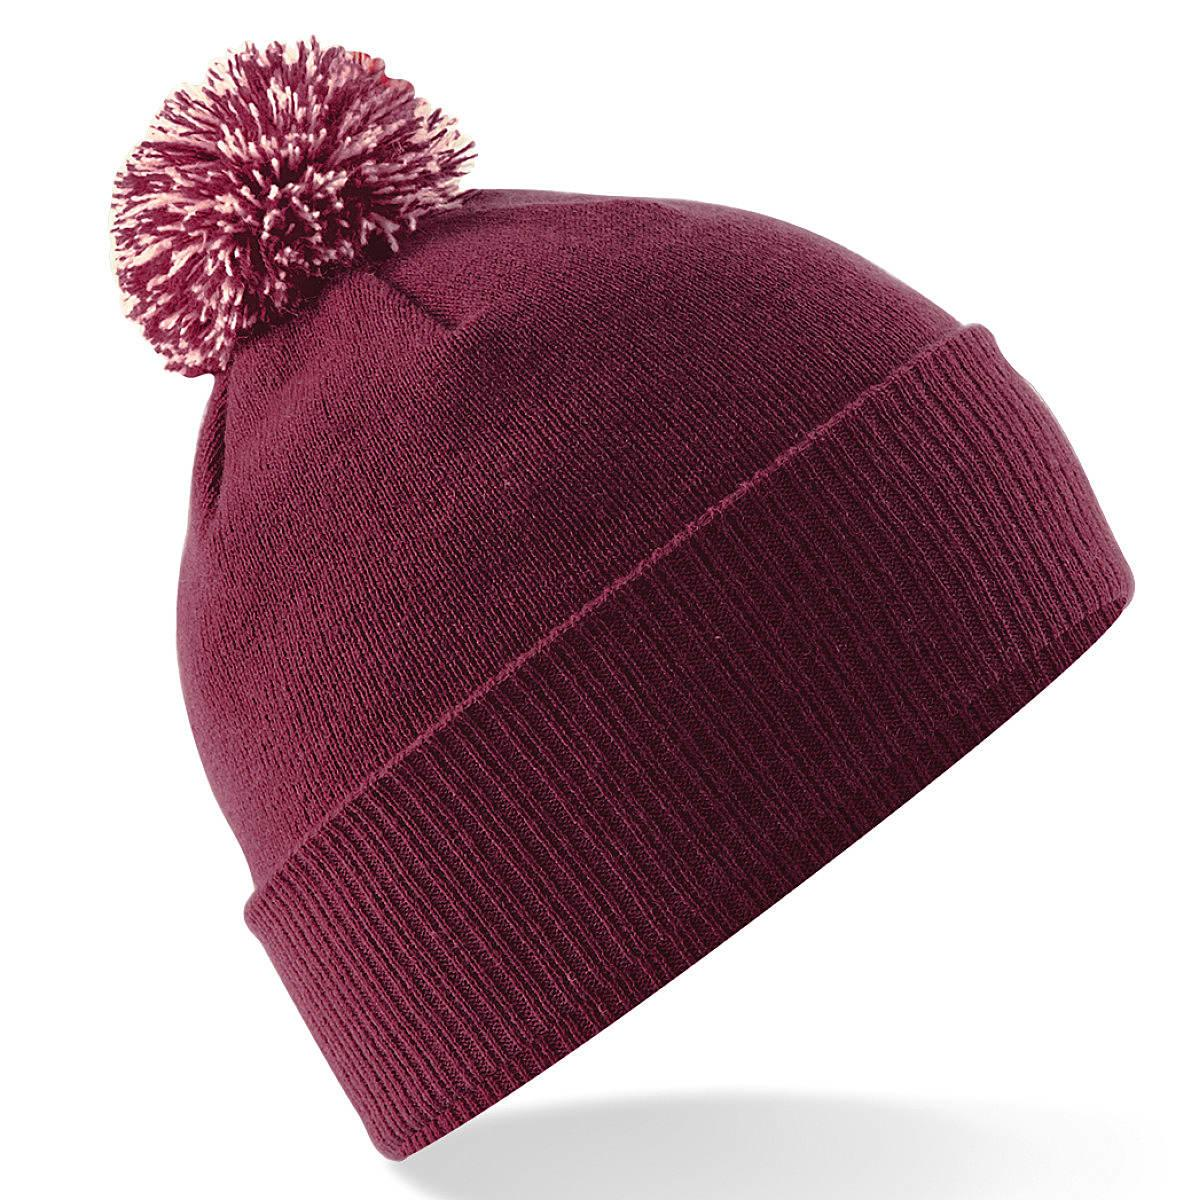 Beechfield Snowstar Beanie Hat in Burgundy / Off-White (Product Code: B450)